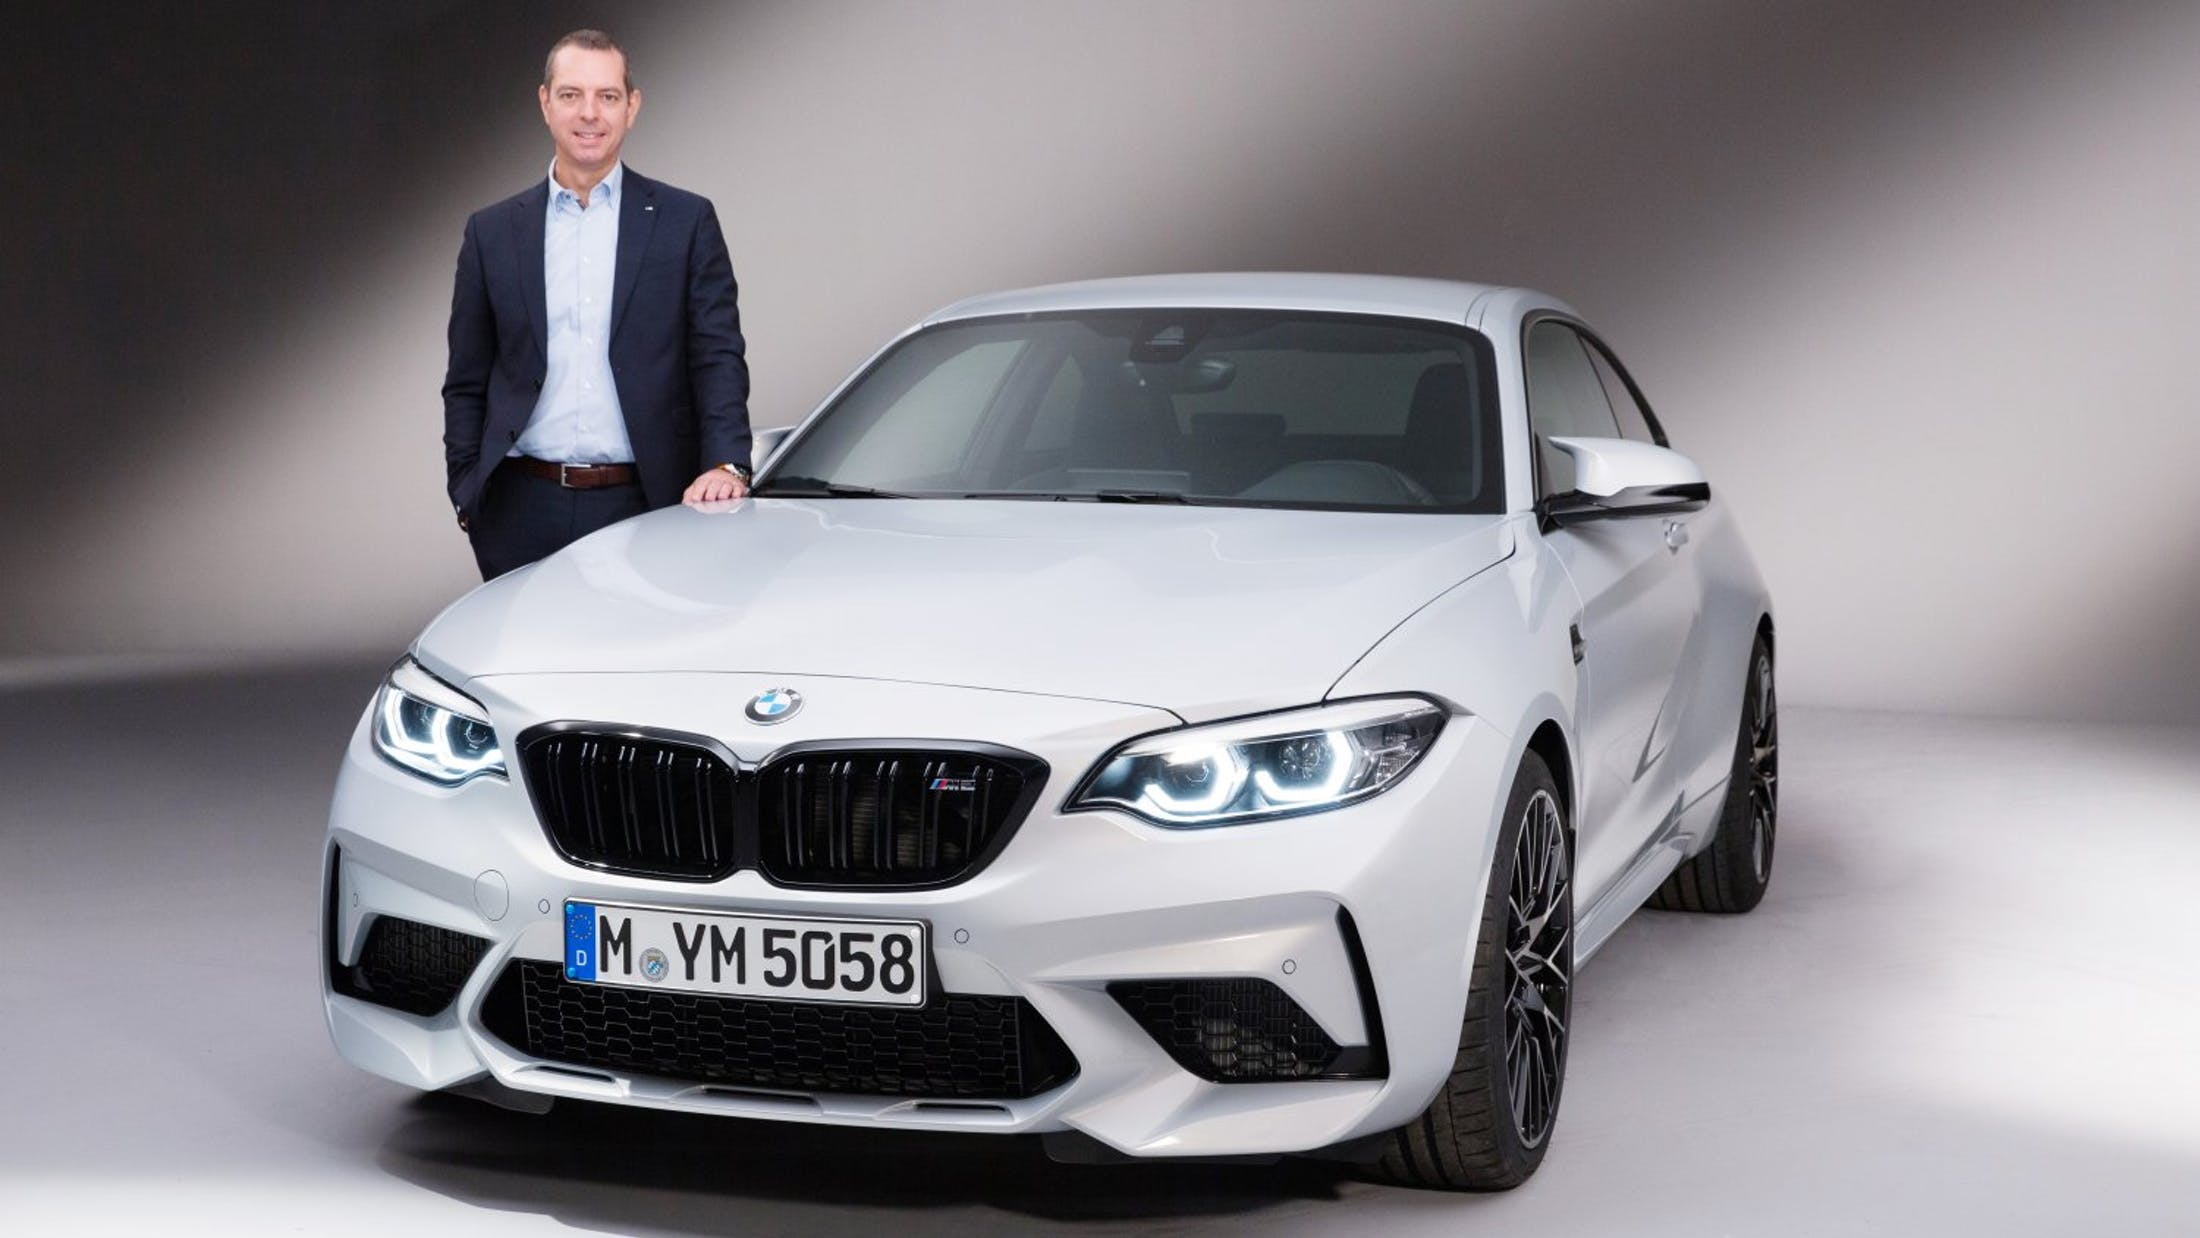 BMW M cars will all be hybrid or electric by 2030